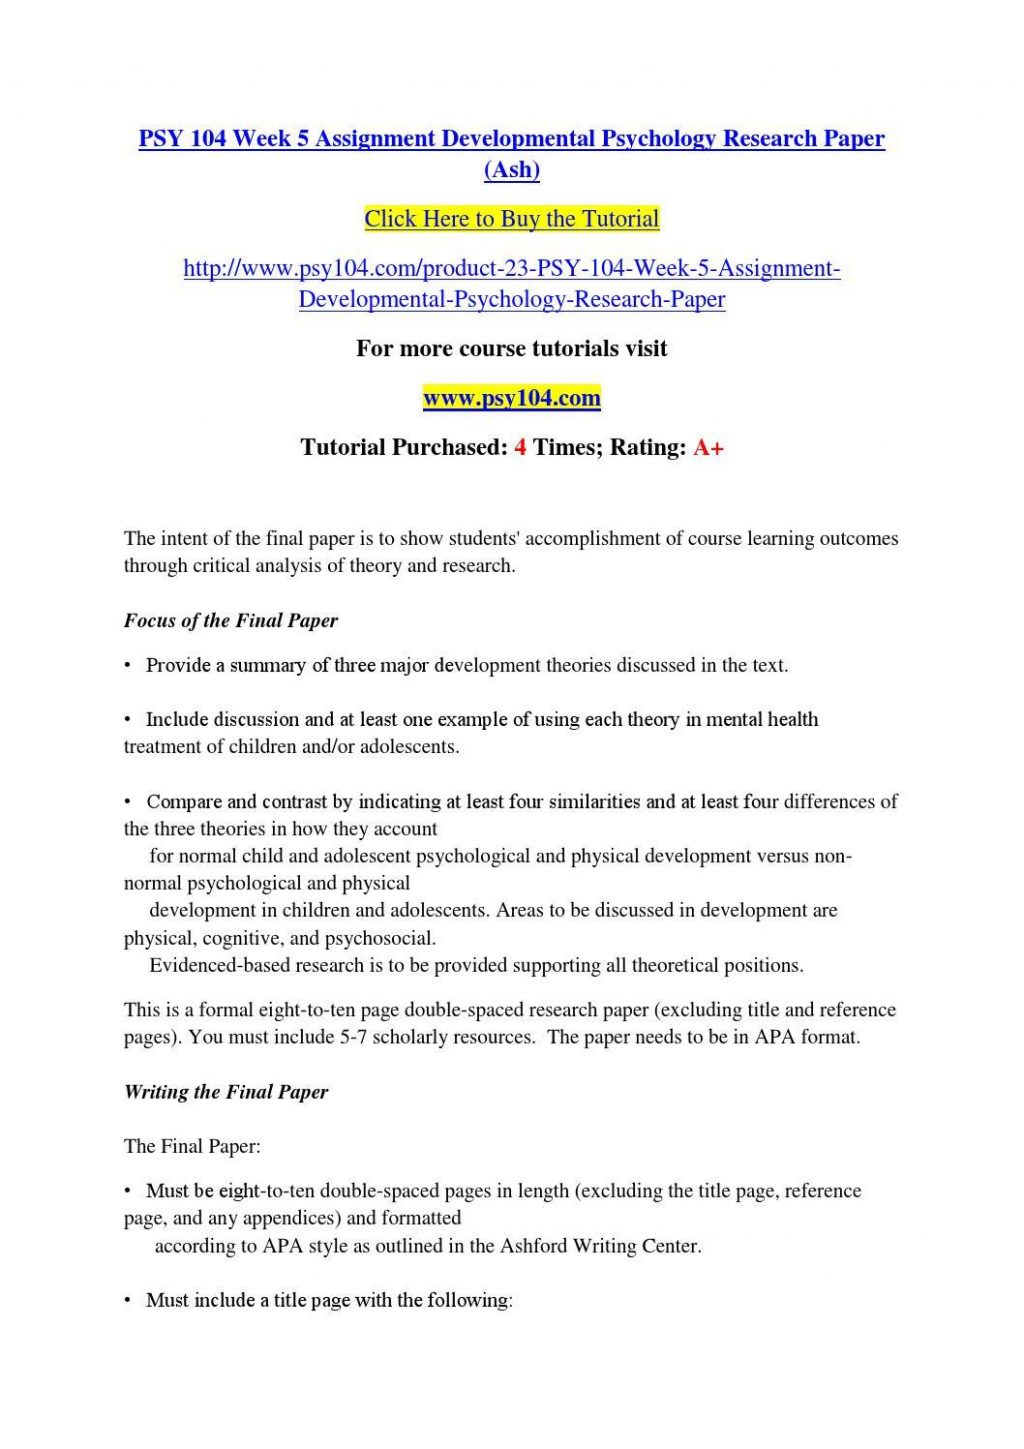 005 Developmental Psychology Essay Ideas Structure Psychological20ent Paper Topics Pdf20 1024x1449 Research Sensational Example Sample Full